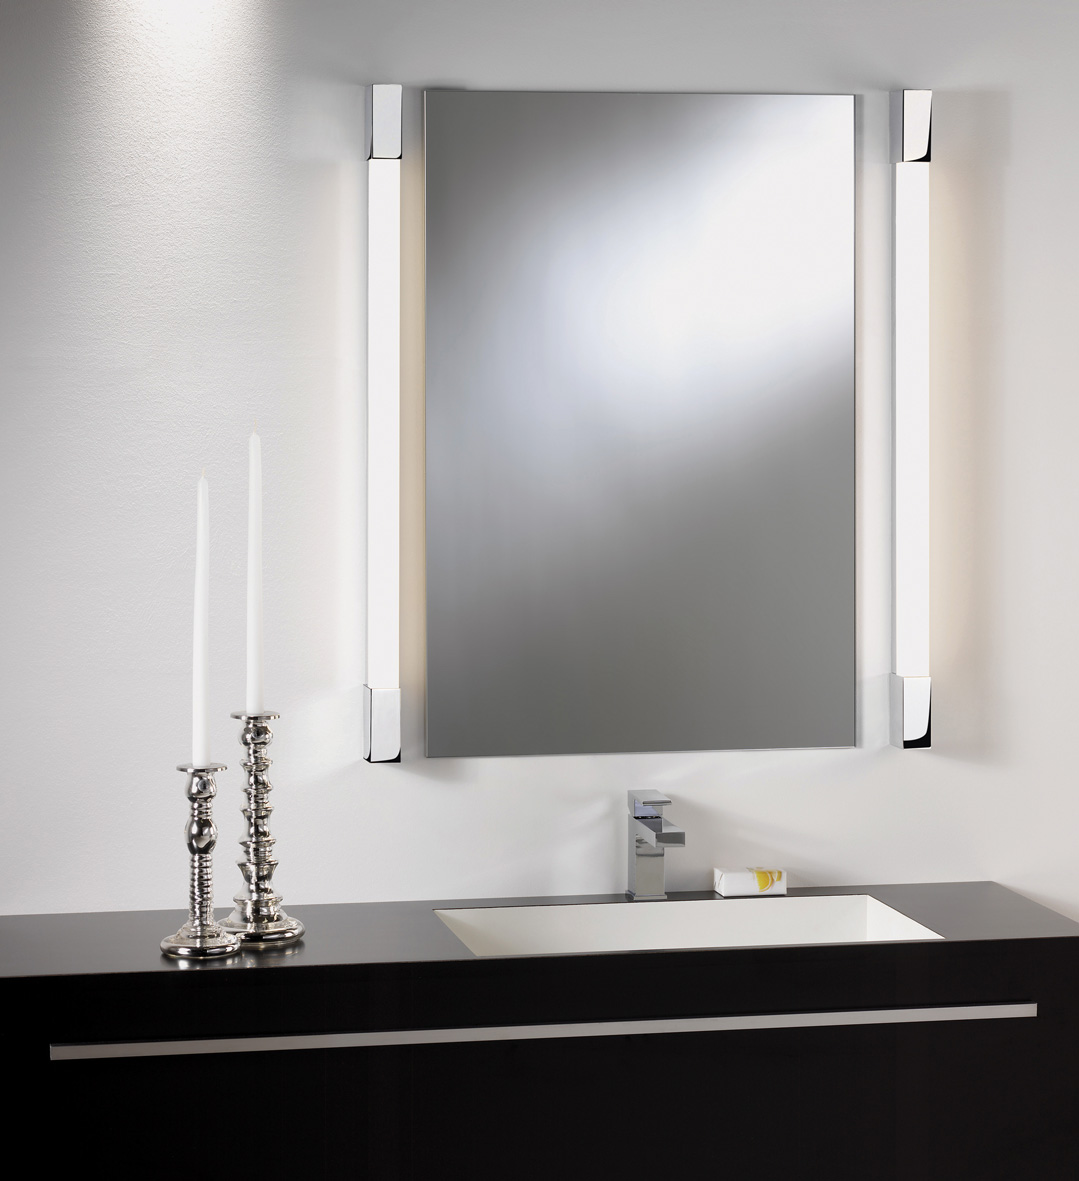 ASTRO ROMANO 1200 0991 Bathroom LED wall light 15W IP44 Polished Chrome finish Thumbnail 2